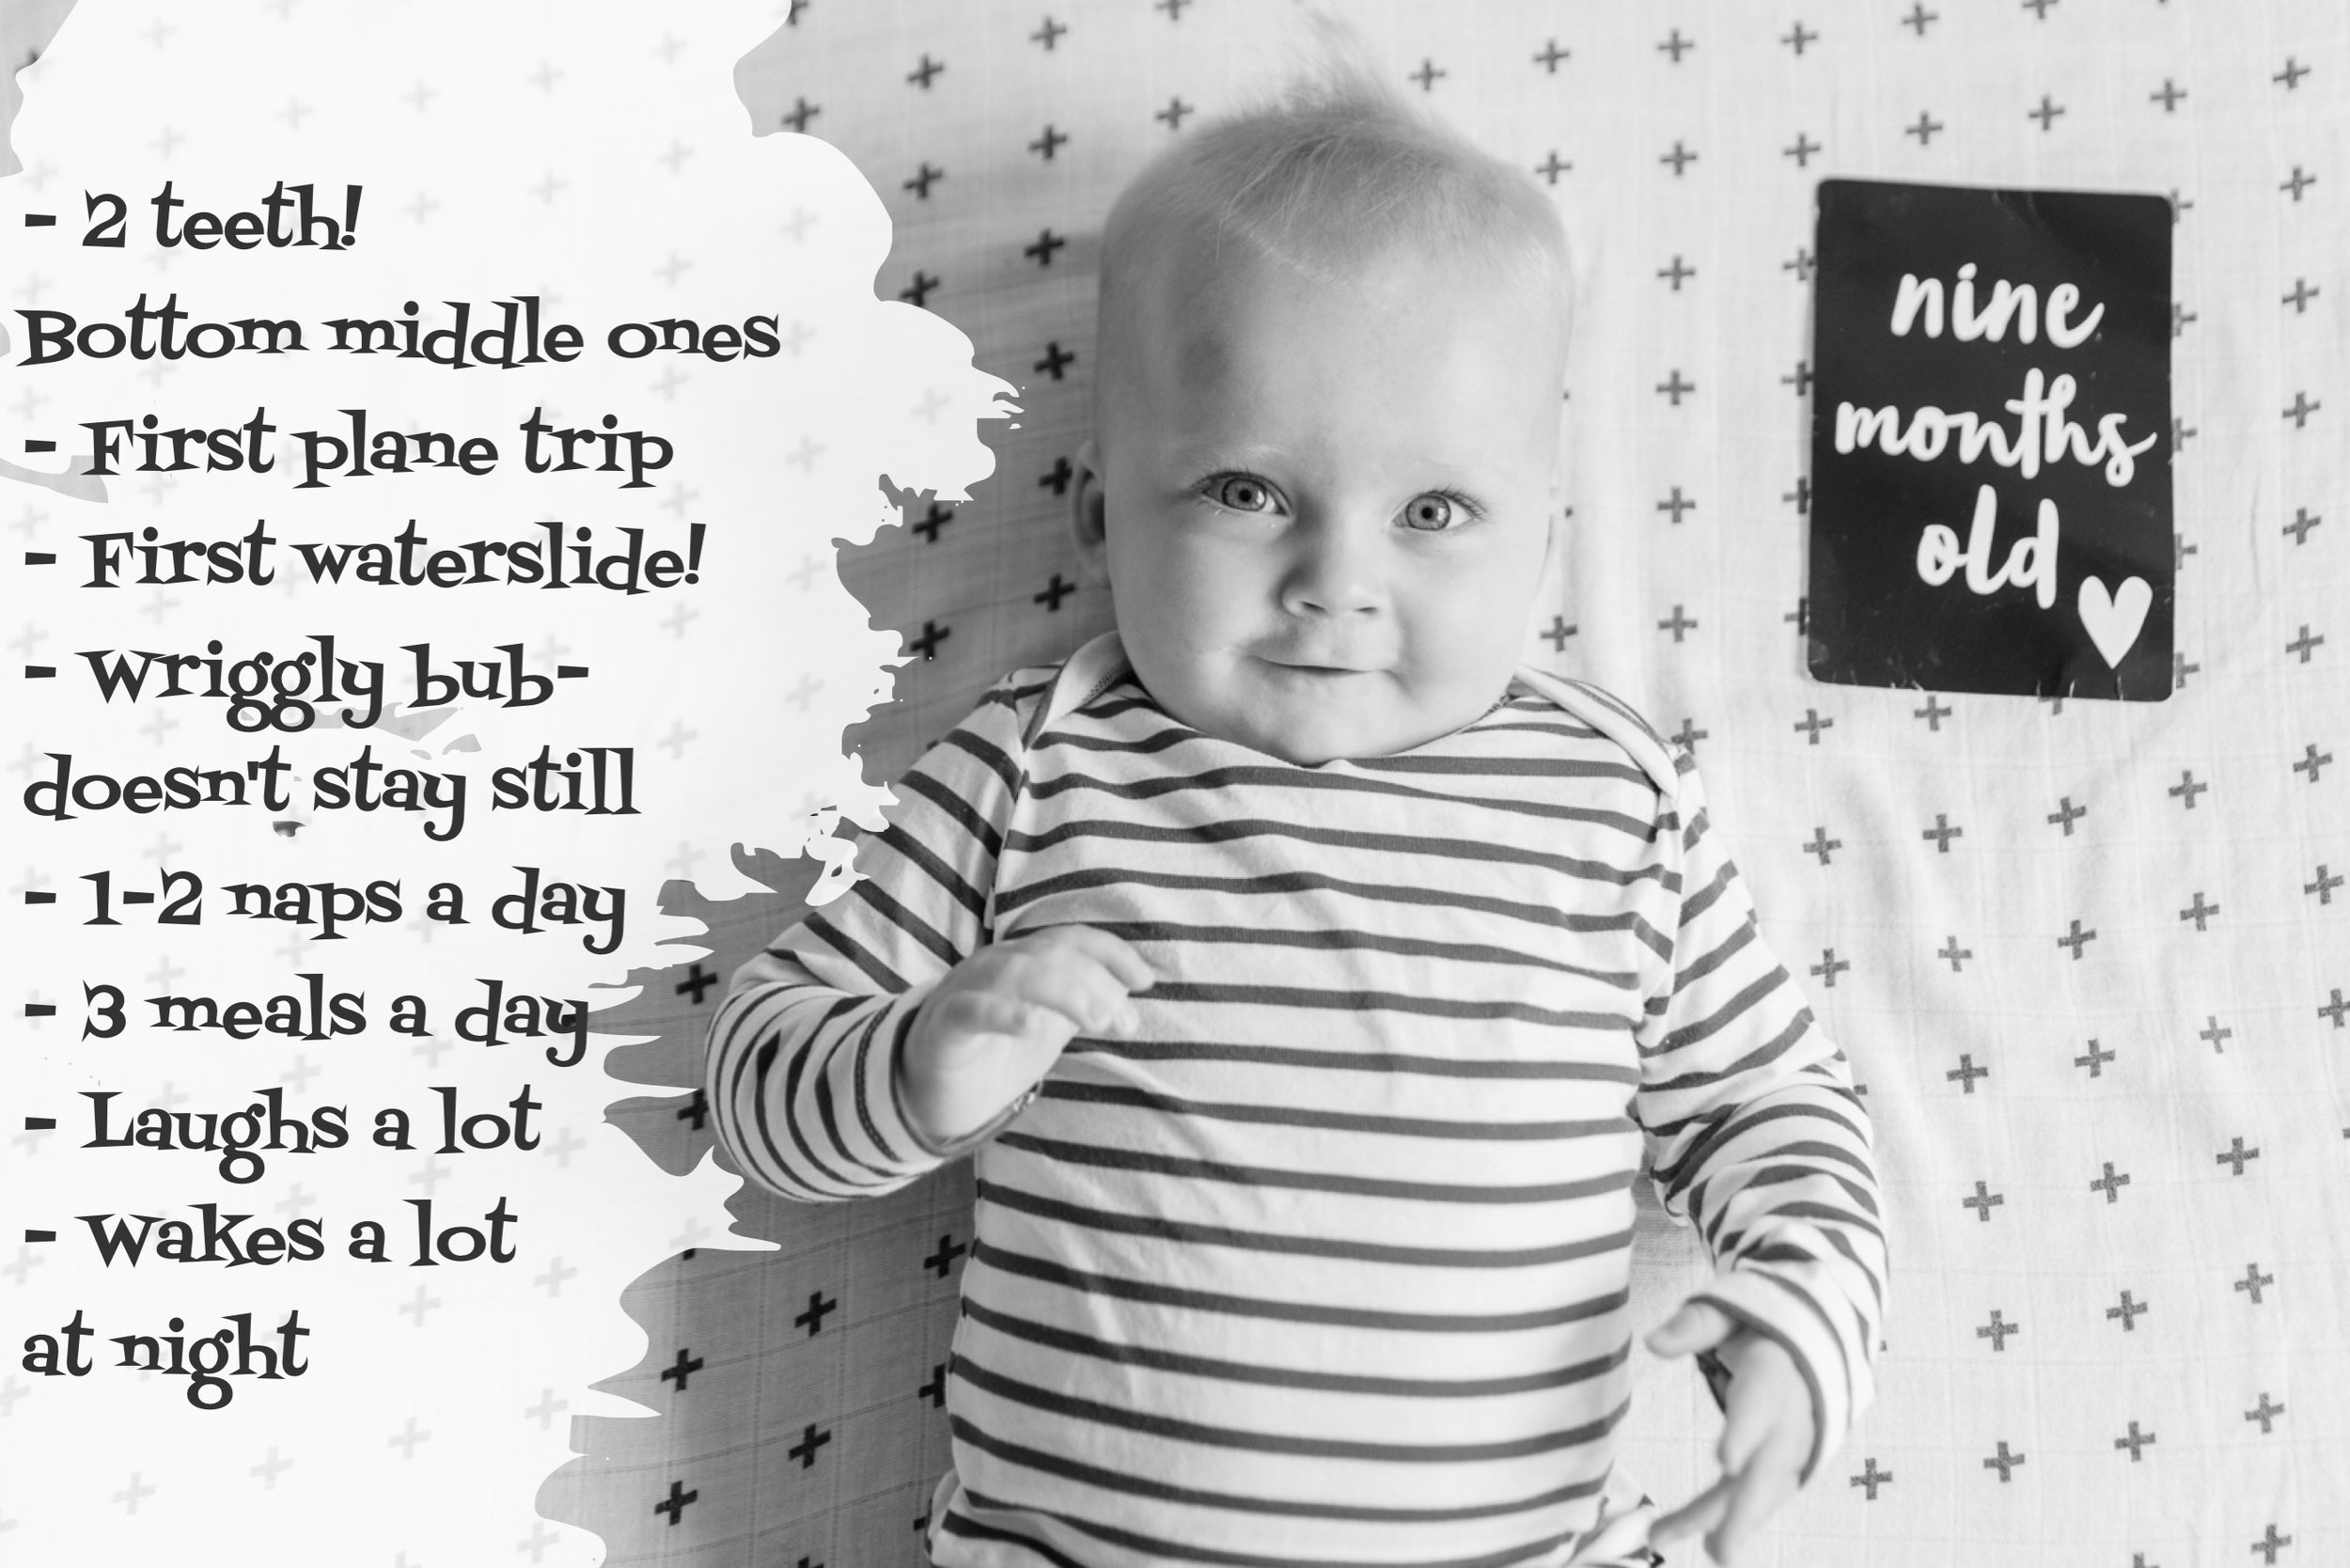 9 months old and a bruise on his forehead from leaning forwards while sitting and falling on the wooden floor